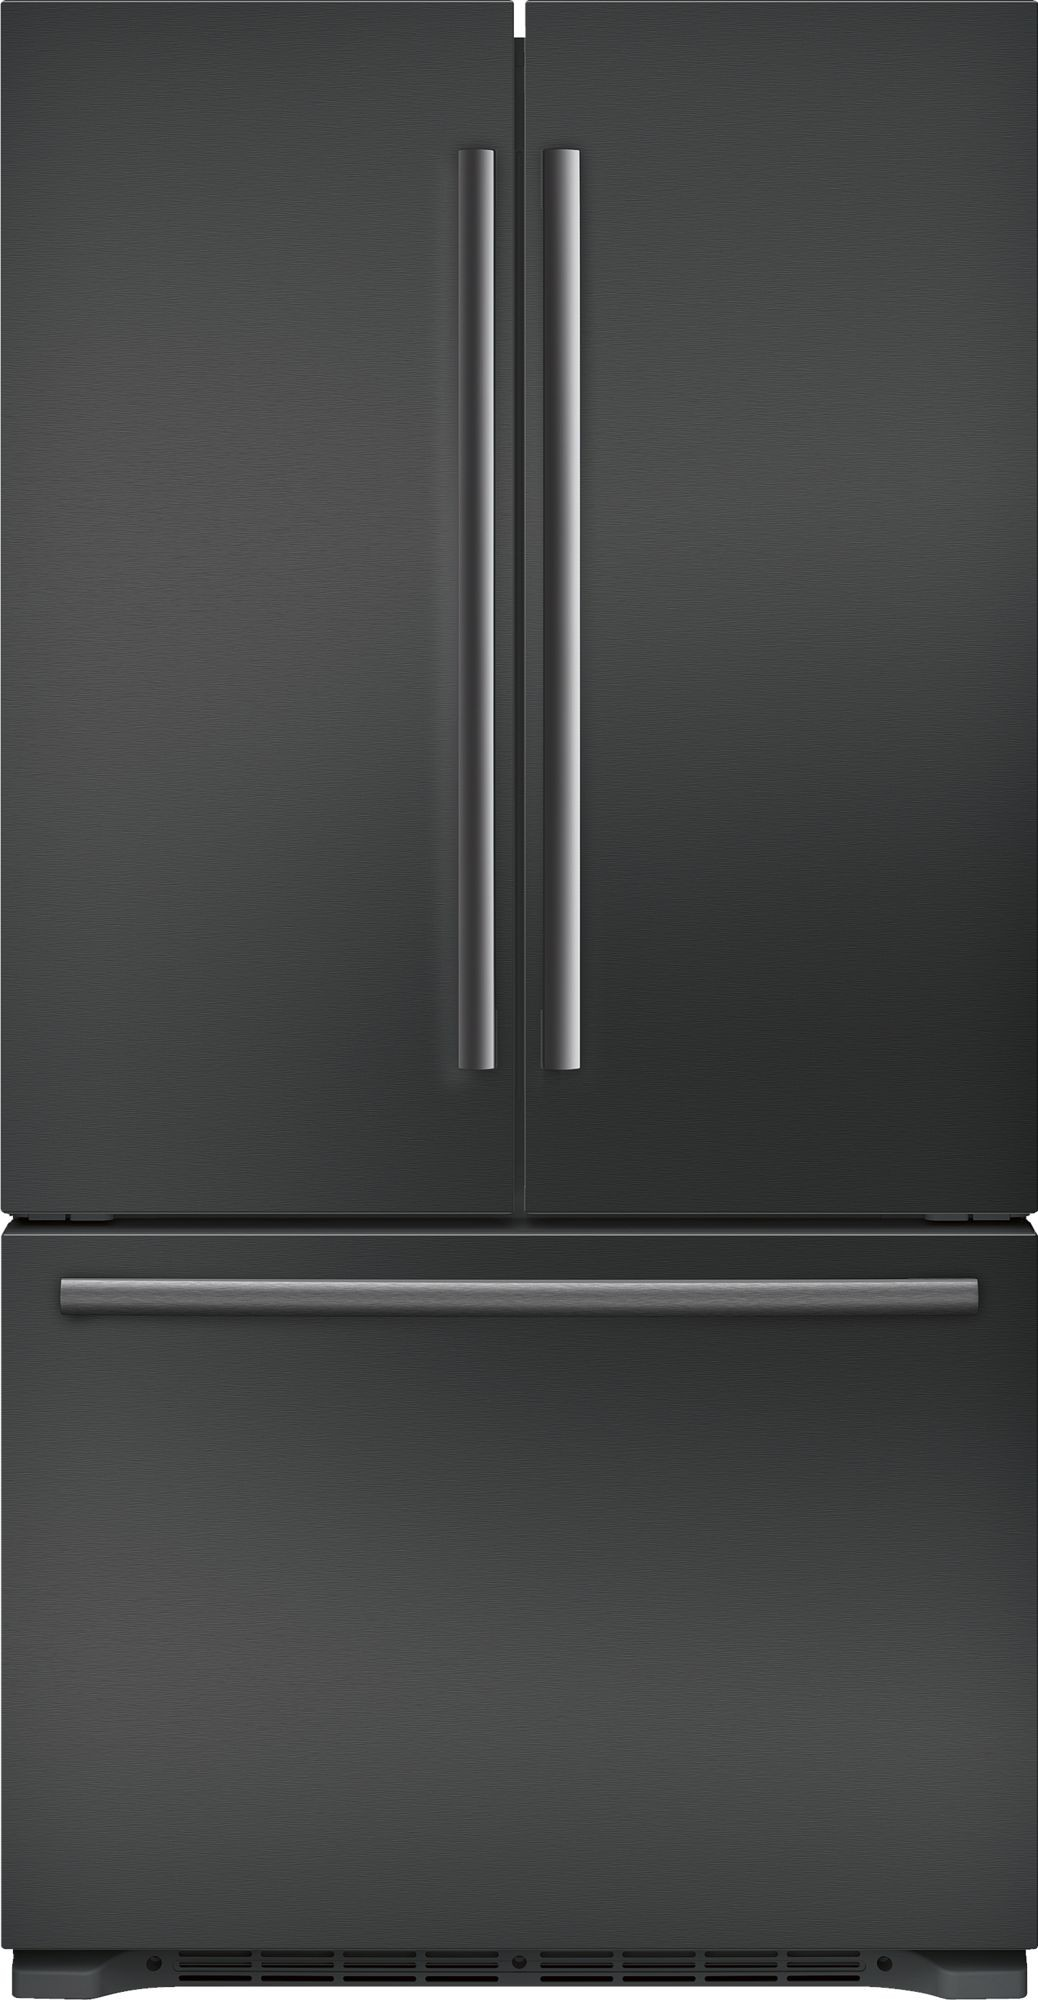 Bosch B21ct80snb 36 Inch Counter Depth French Door Refrigerator With Filtered Automatic Ice Maker Retractable Half Shelf Full Width Chiller Drawer Dual Airco Counter Depth French Door Refrigerator Countertop Remodel Automatic Ice Maker